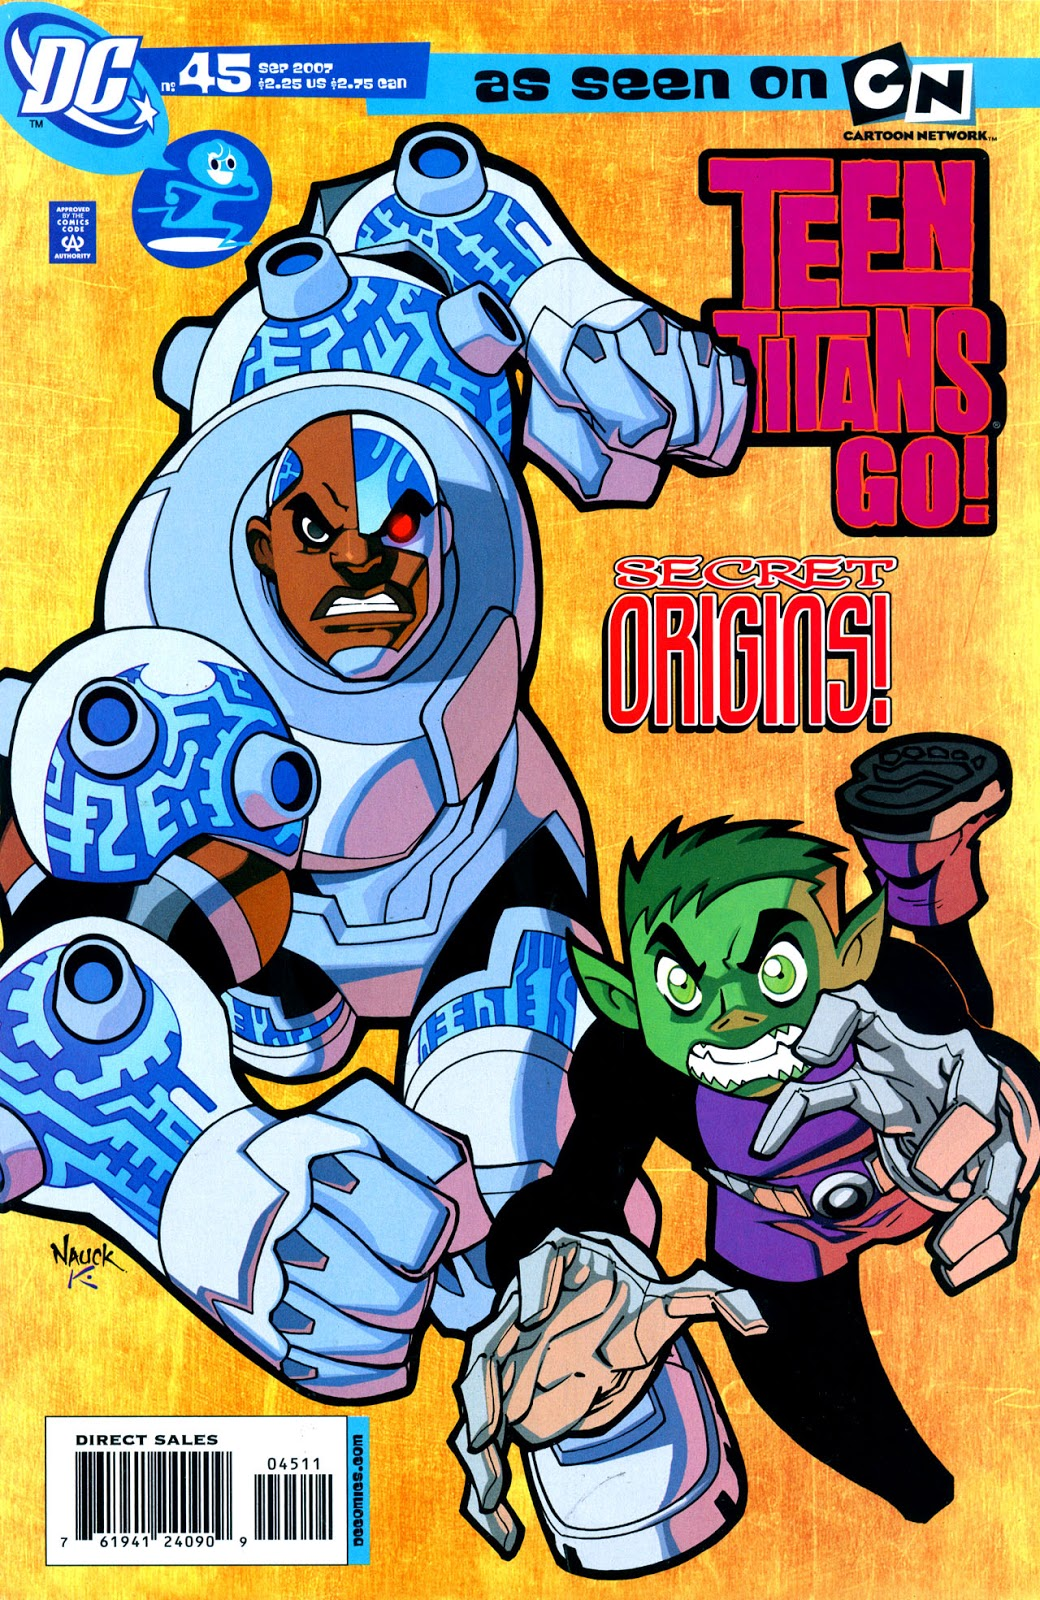 Biography of a Beast Boy/Cyborg's Story